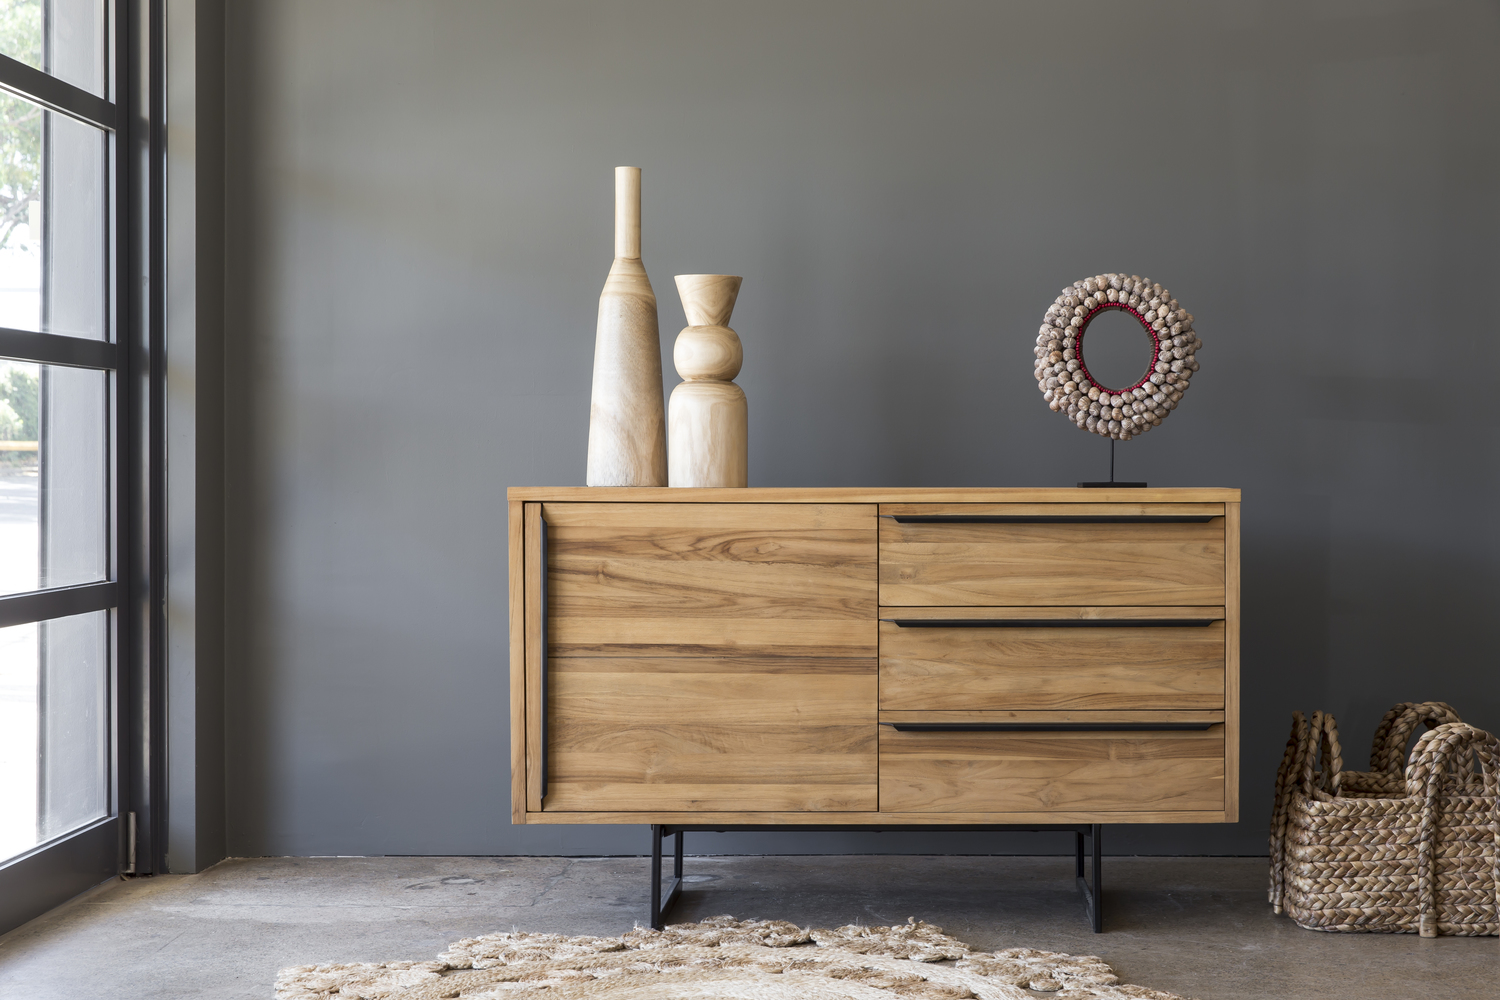 Staple&Co_Styled_Sideboard_StPeters_Project82.jpg